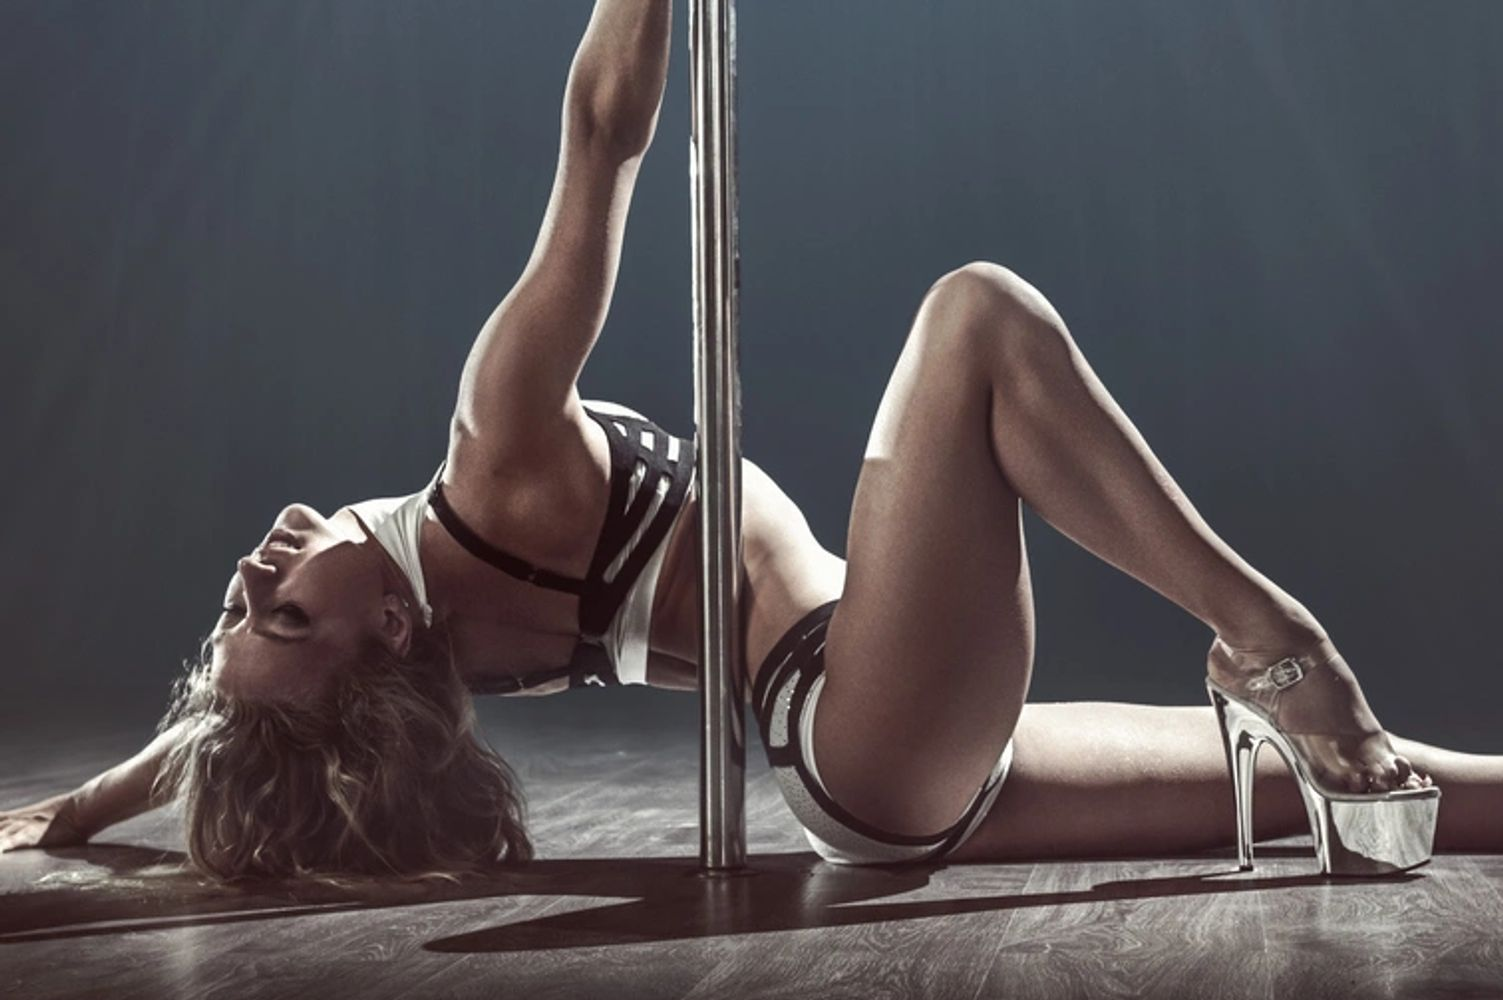 pole classes, pole dancing, pole dancing classes, beginner pole dance, pole dance class, fitness